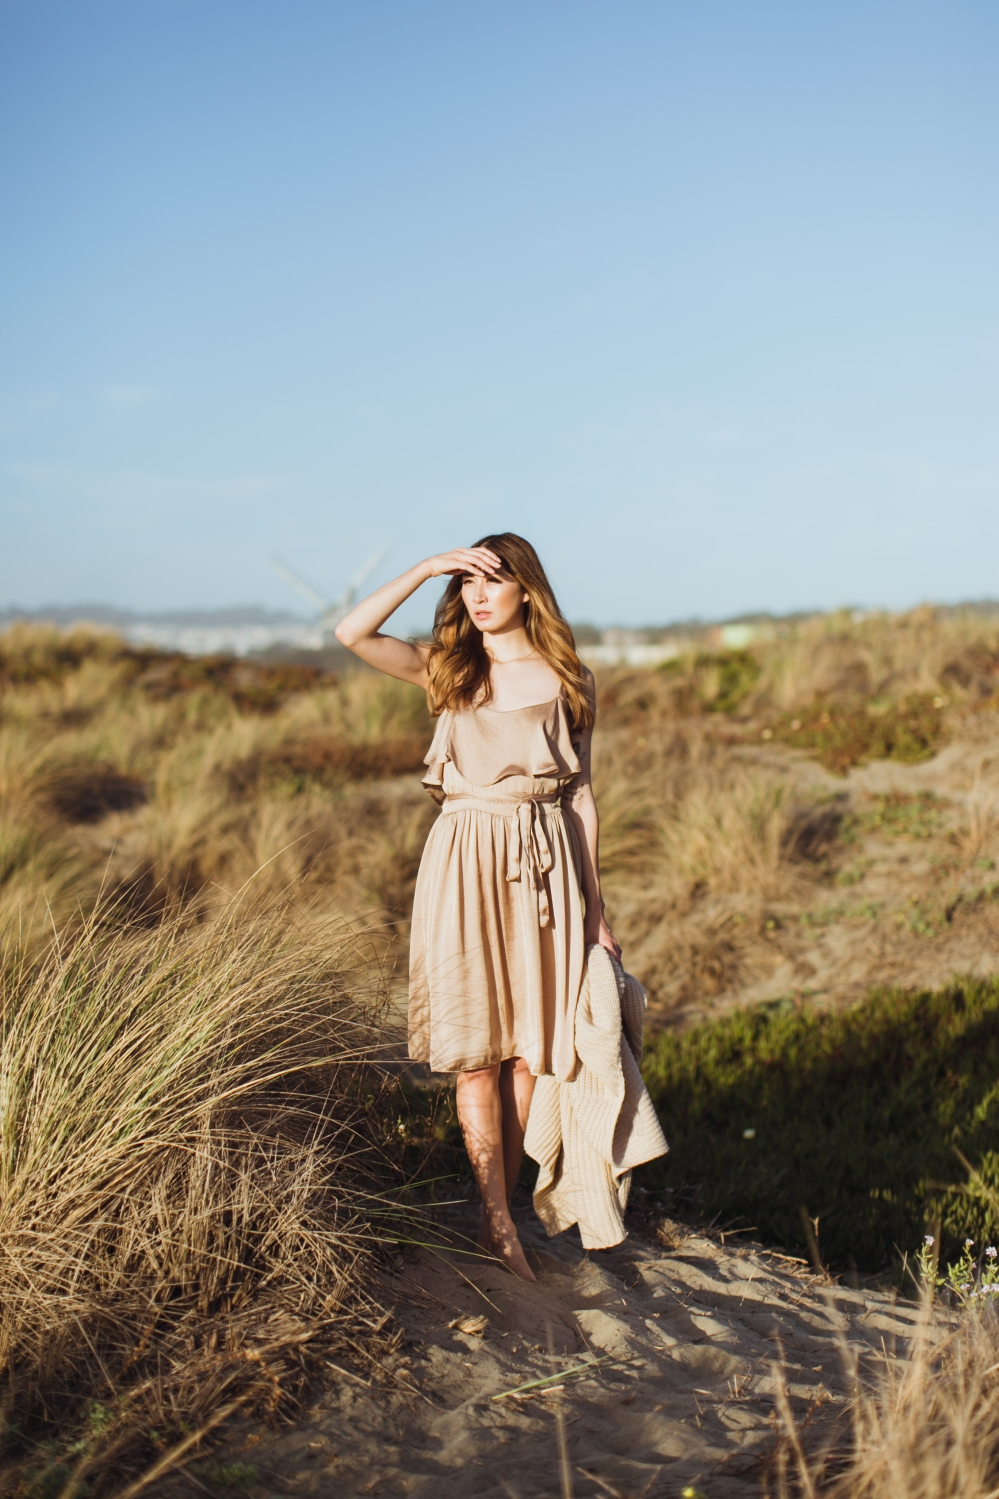 alyssa-nicole-ethereal-girl-ocean-beach-emma-dress-4